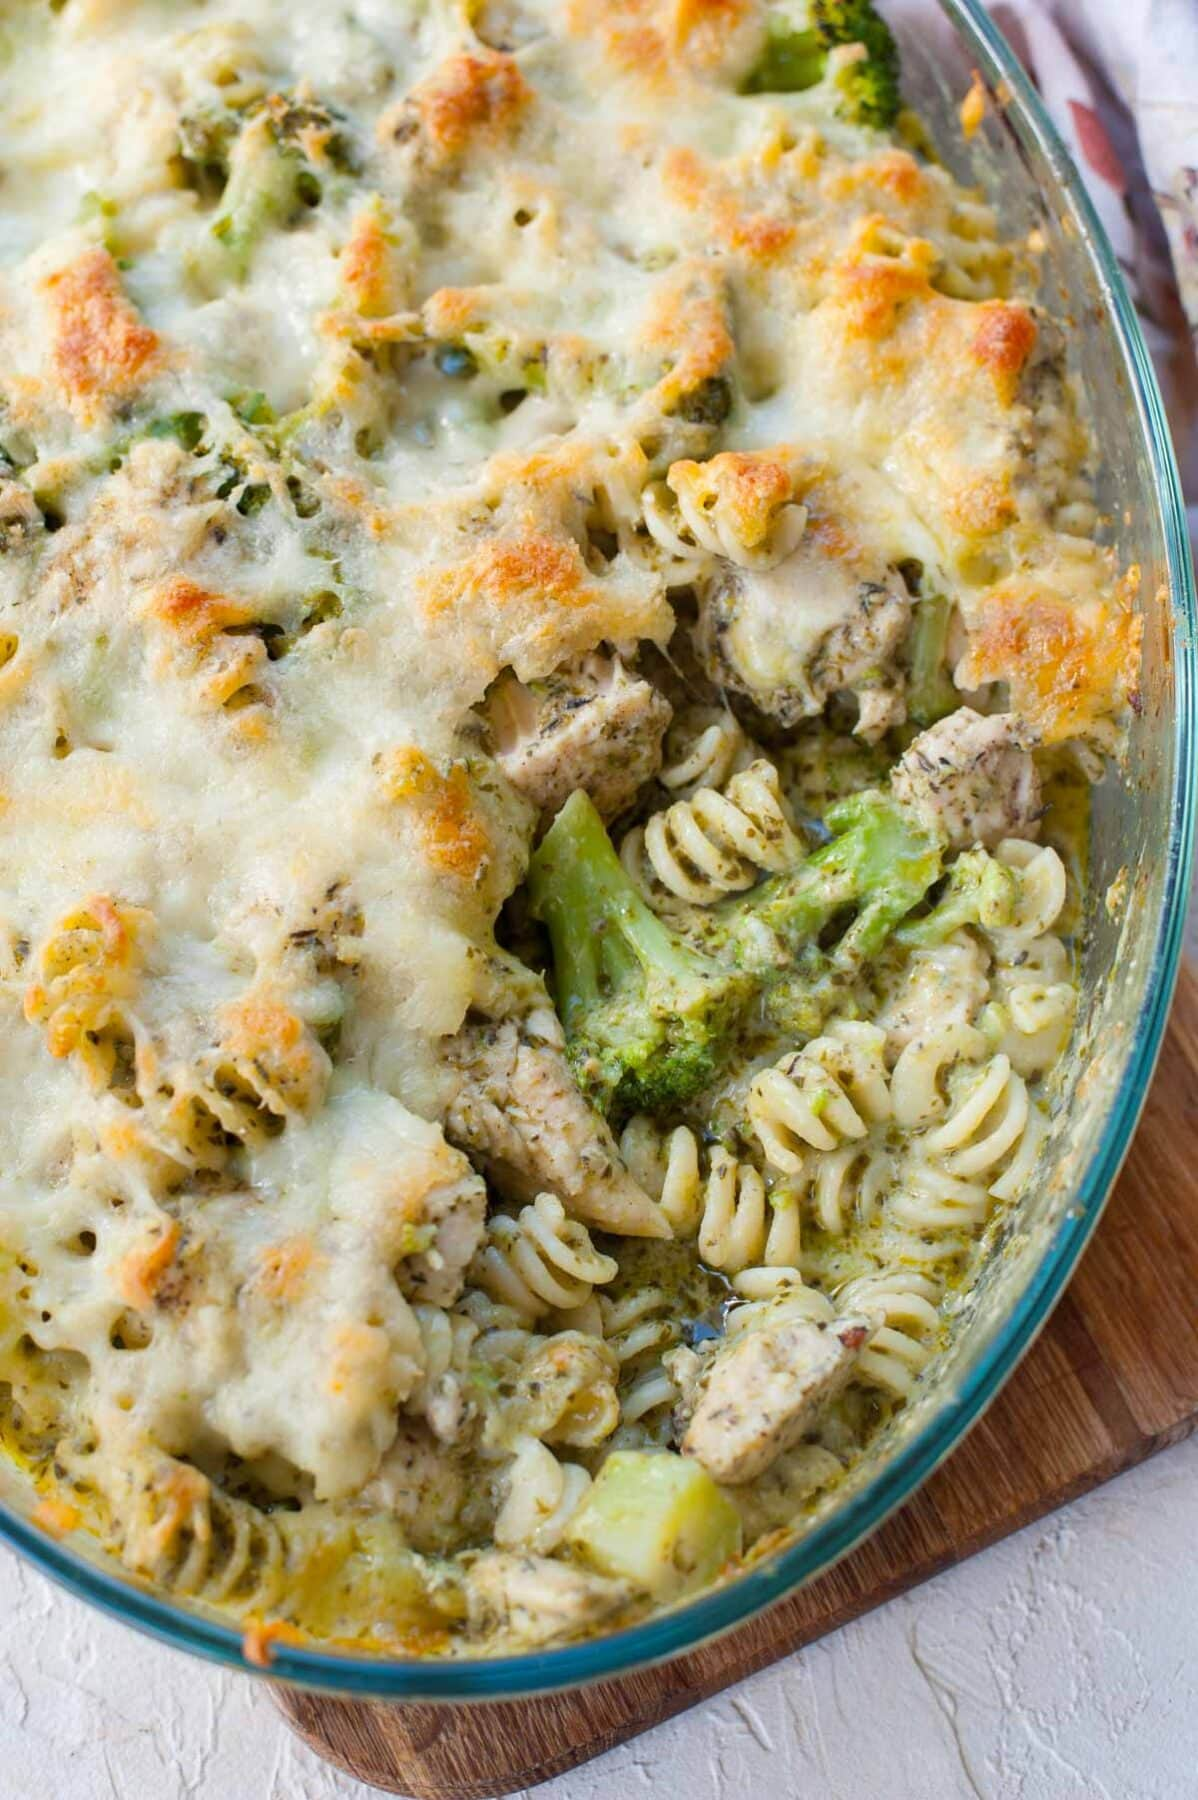 Pesto chicken bake in a casserole dish with a serving missing.